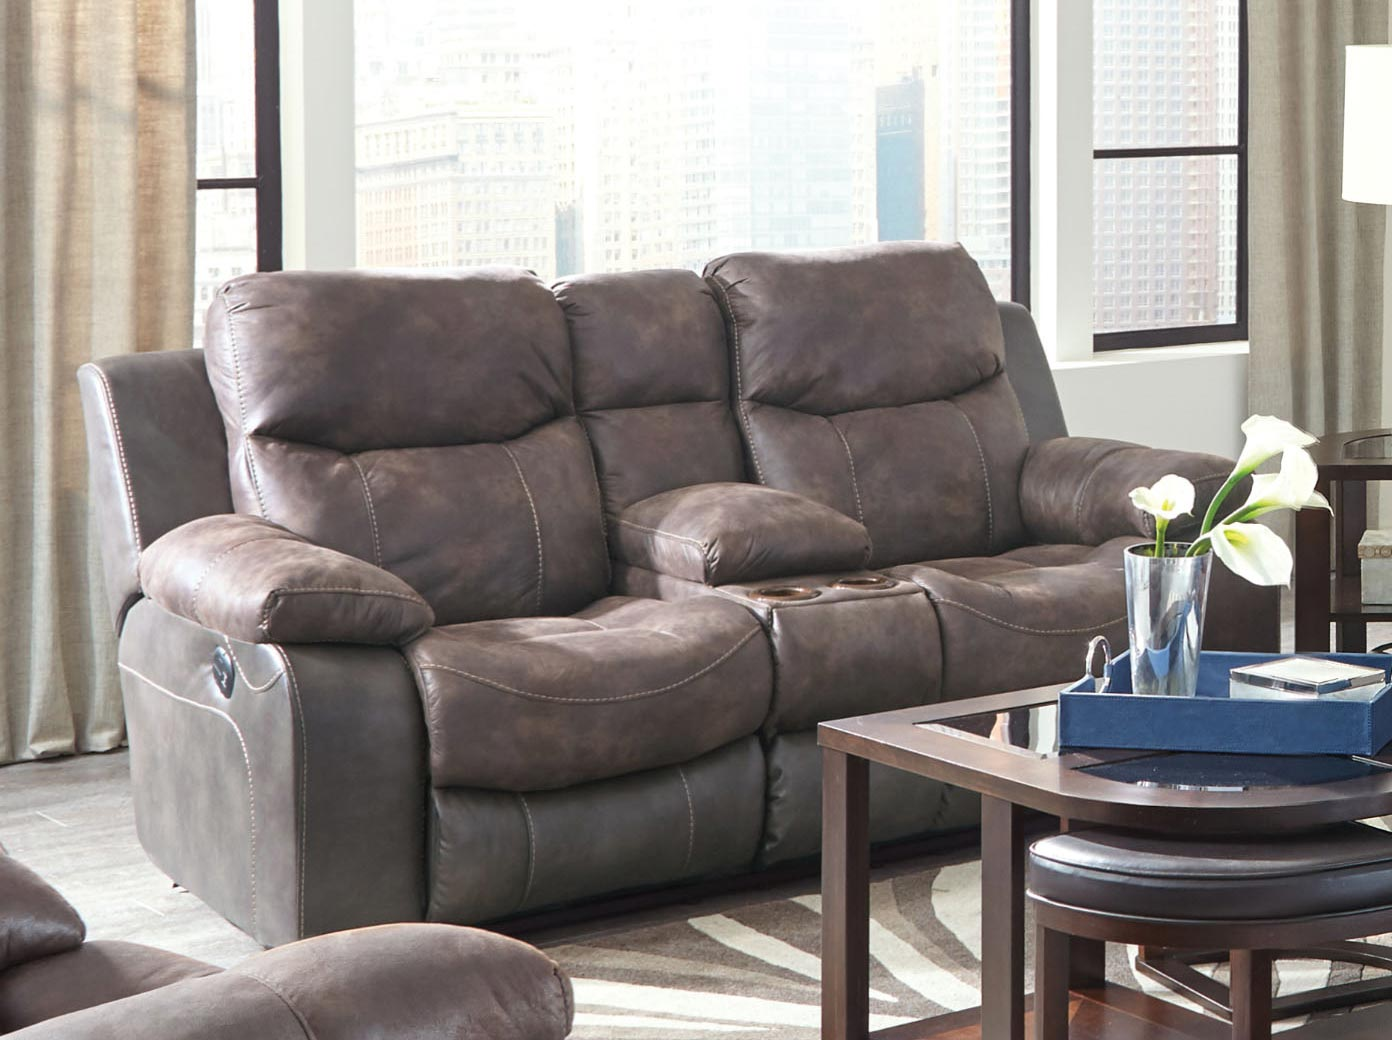 CatNapper Henderson Power Reclining Console Loveseat With Storage and Cupholders - Dusk